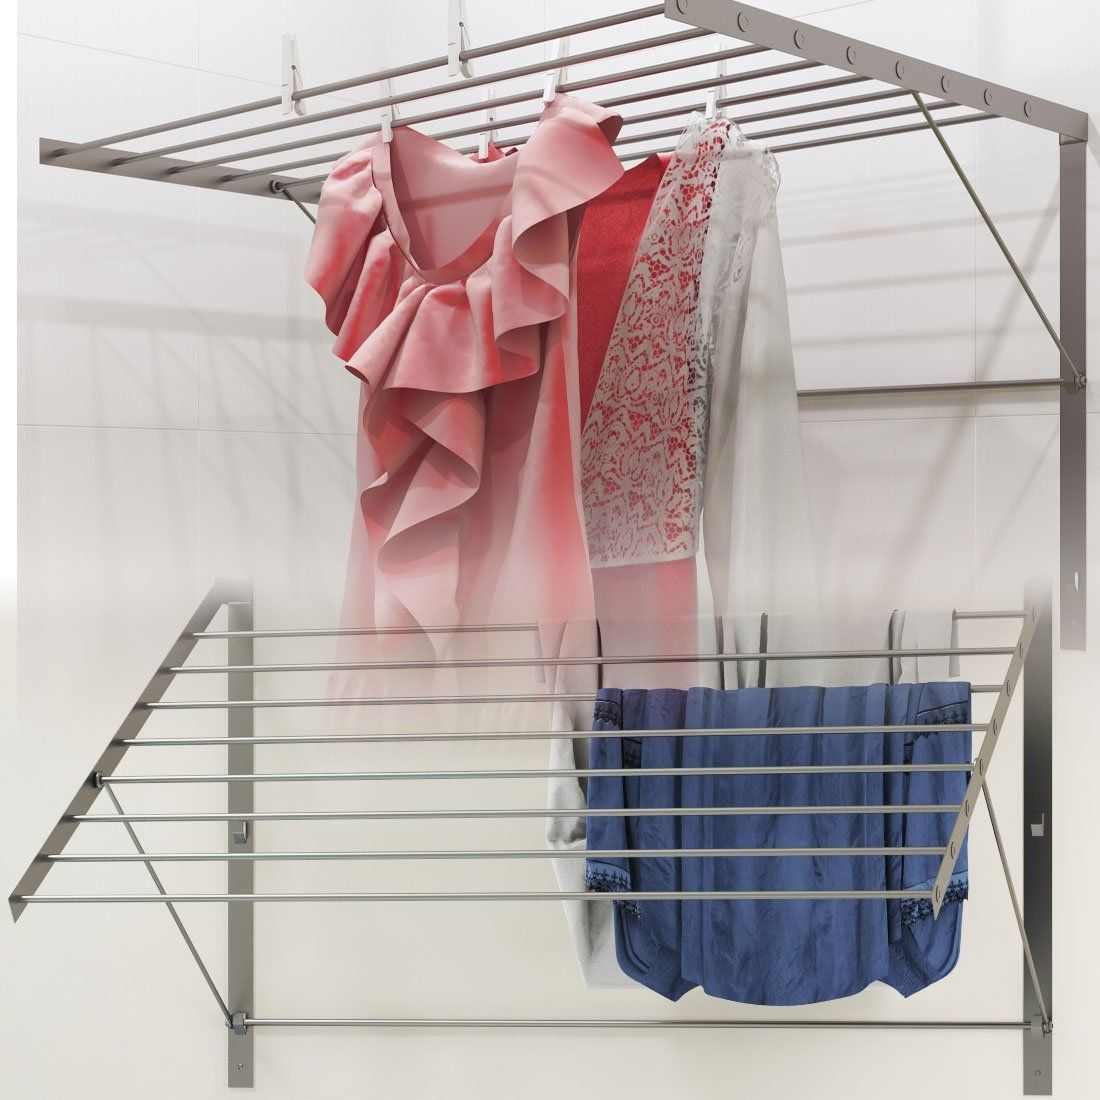 Amazon Com Clothes Drying Rack Stainless Steel Wall Mounted